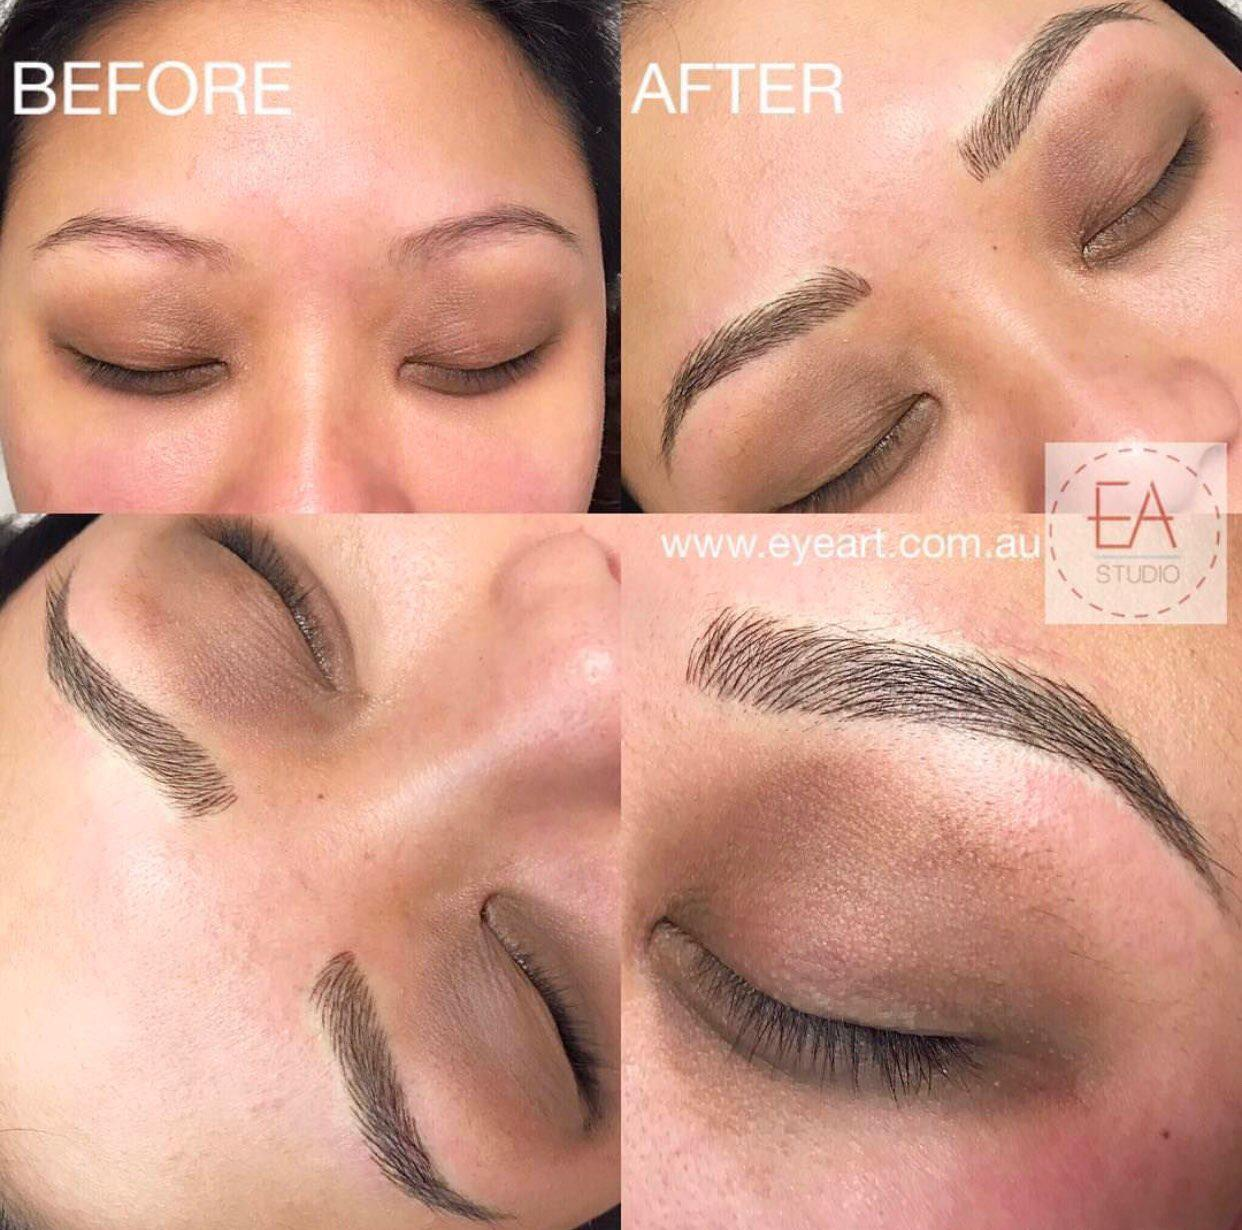 Microblading Eyebrow Tattoo Before and After Photo